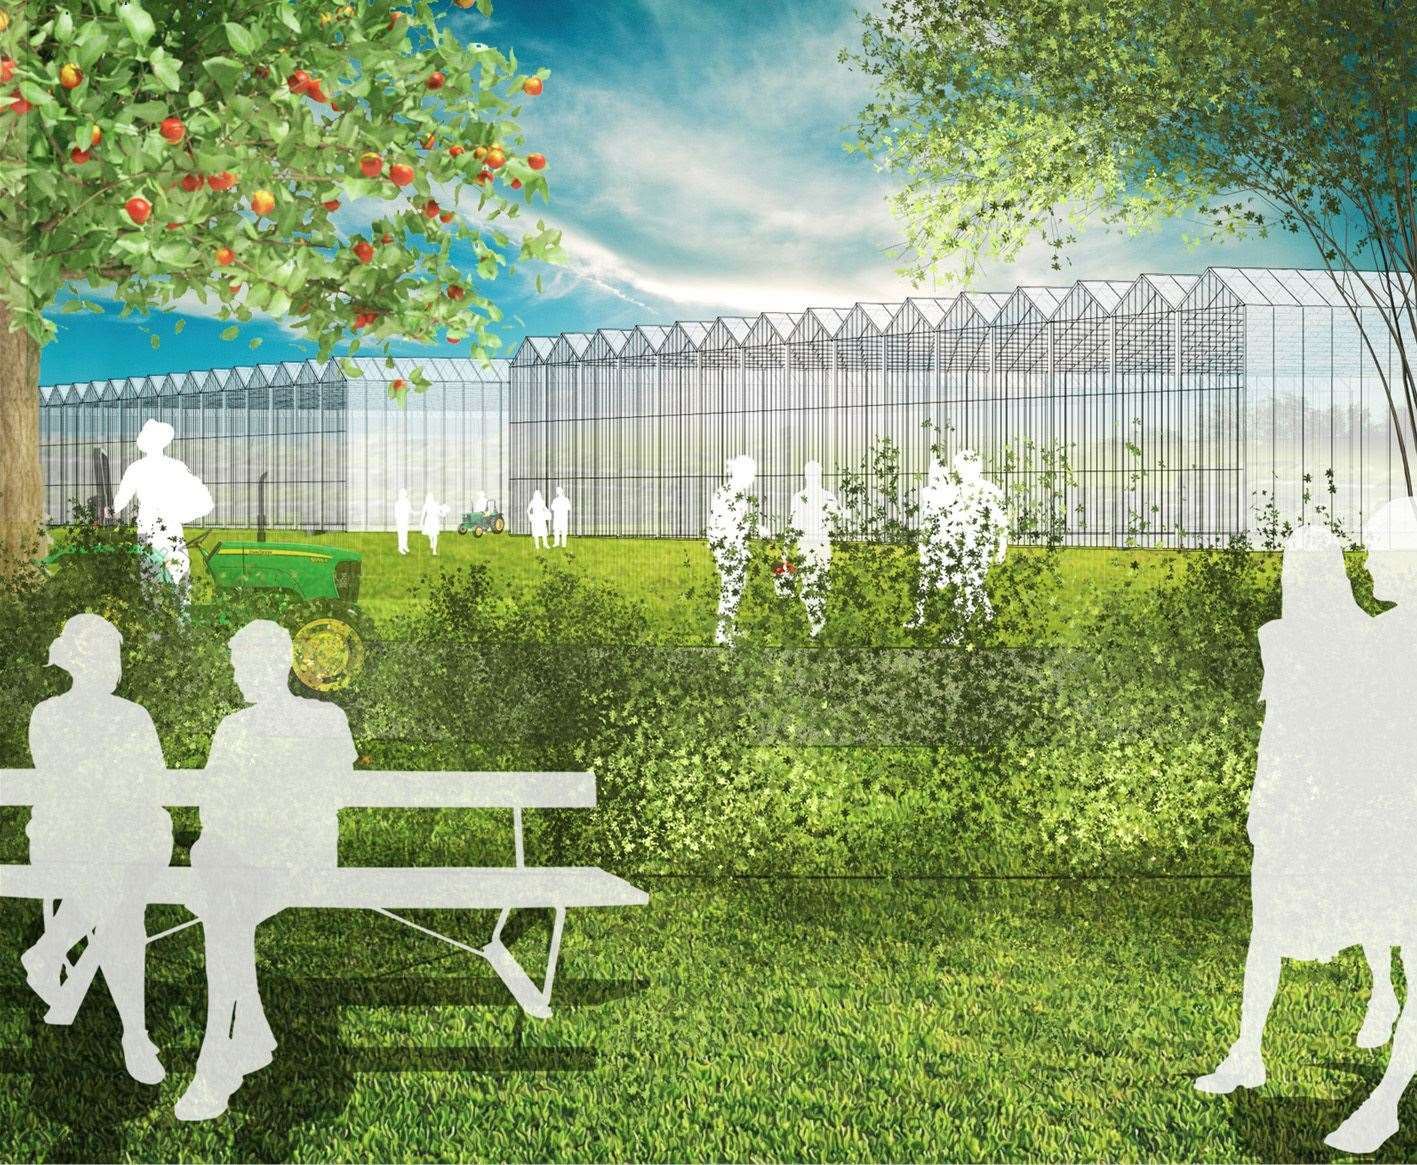 How the advanced horticultural technology zone could look